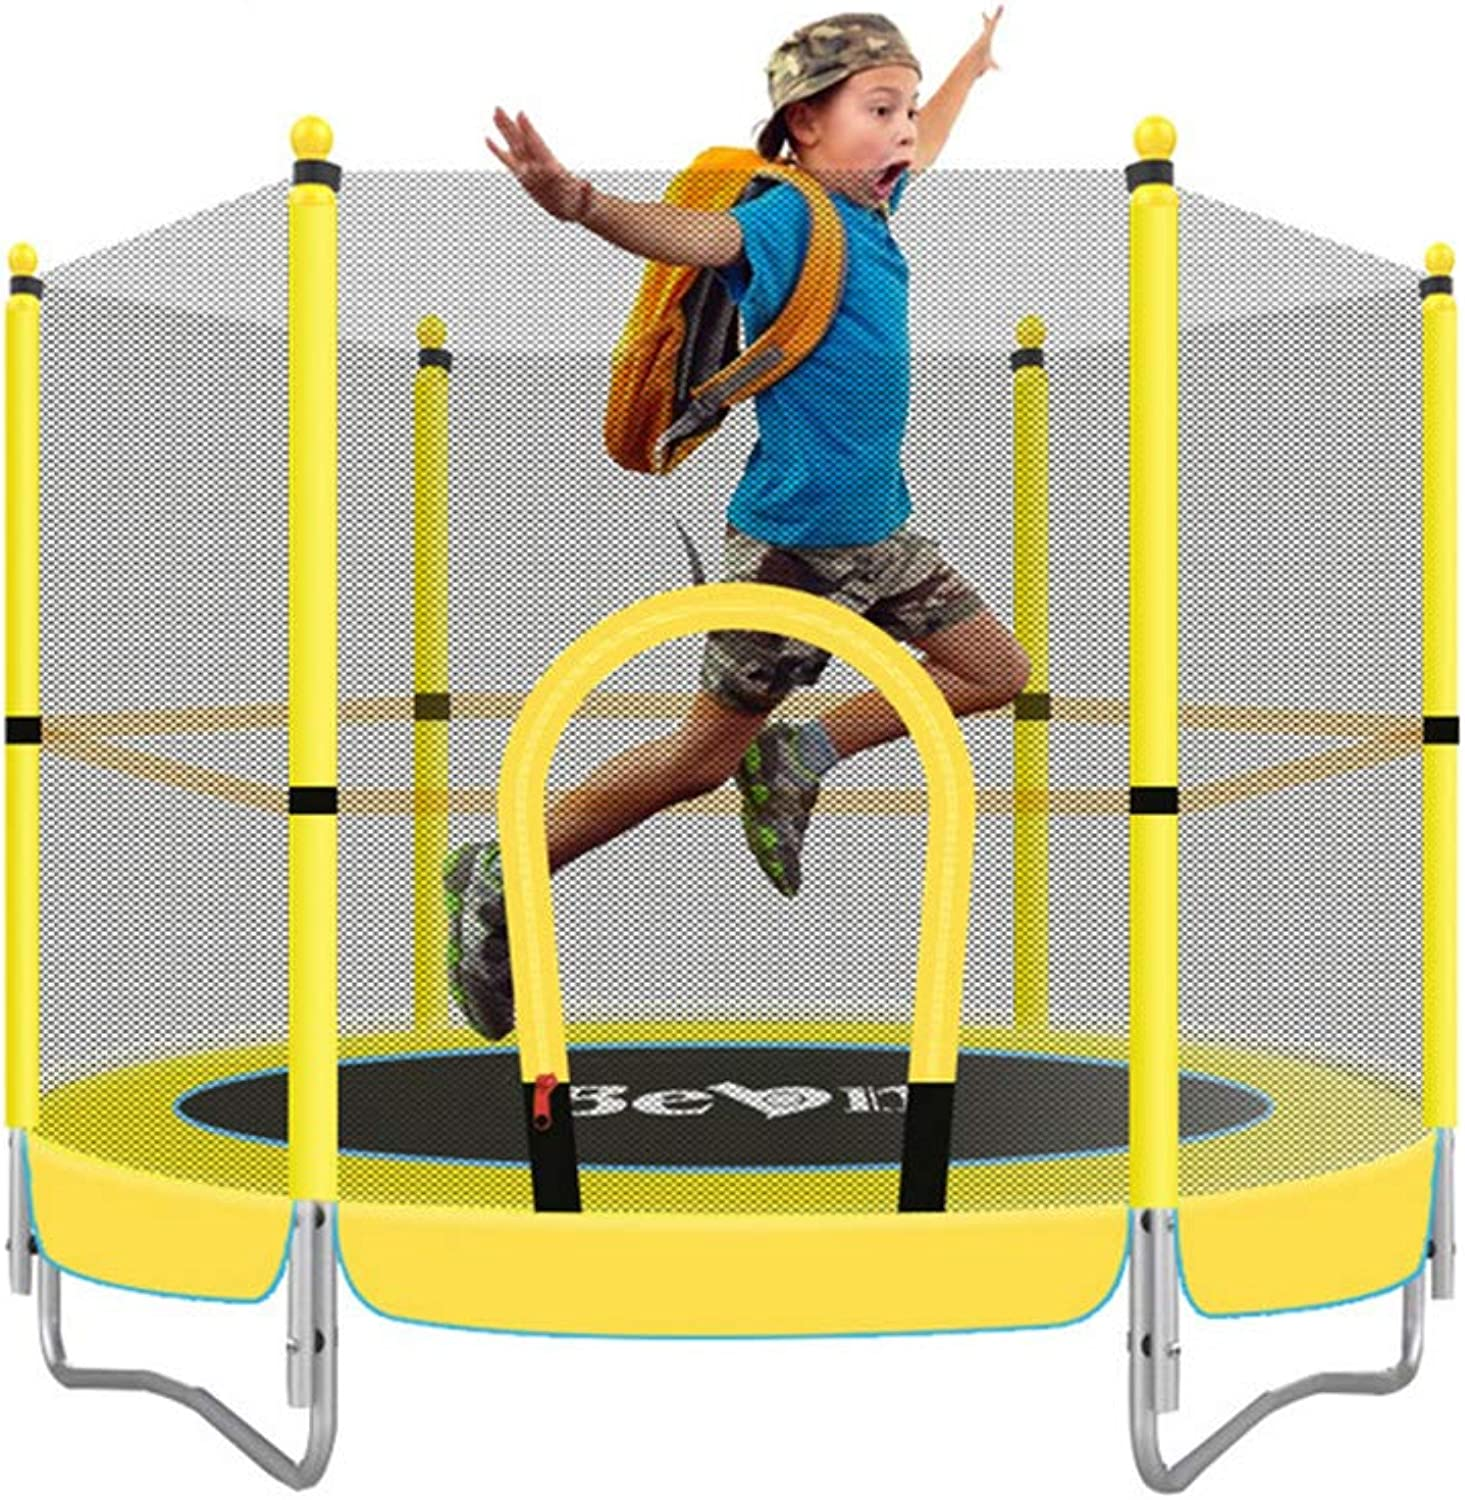 Trampoline for Kids Trampoline with Safety Enclosure Indoor Or Outdoor Trampoline for Kids